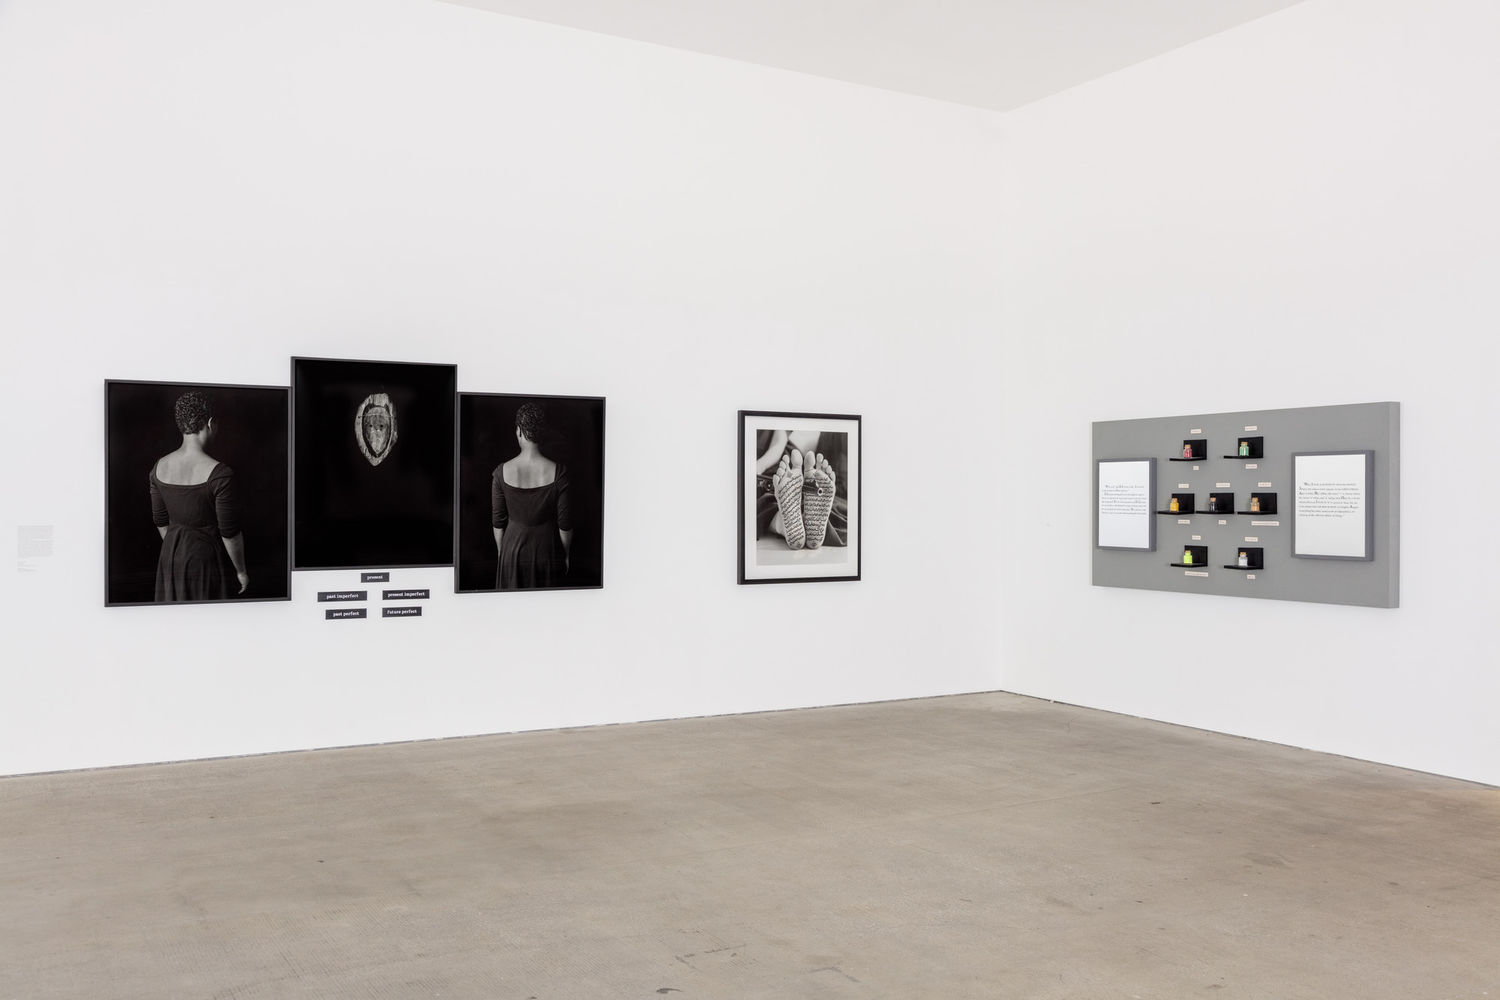 A white-walled gallery with several works hanging